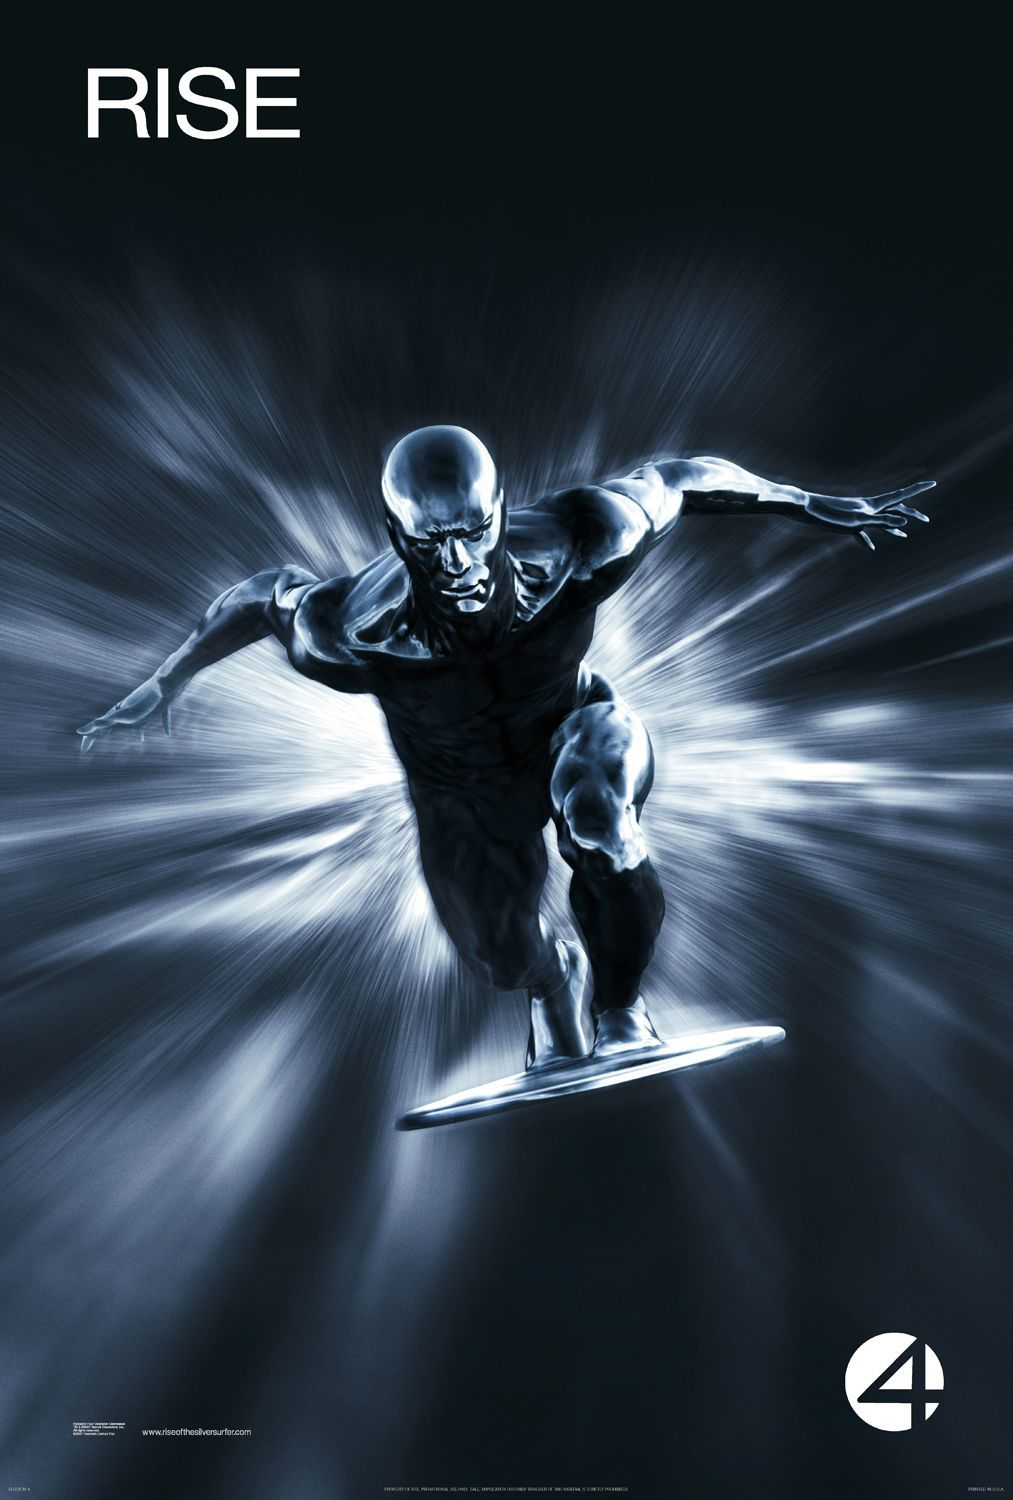 Fantastic Four Rise Of The Silver Surfer Extra Large Movie Poster Image Internet Movie Poster Awa Silver Surfer Wallpaper Silver Surfer Movie Silver Surfer